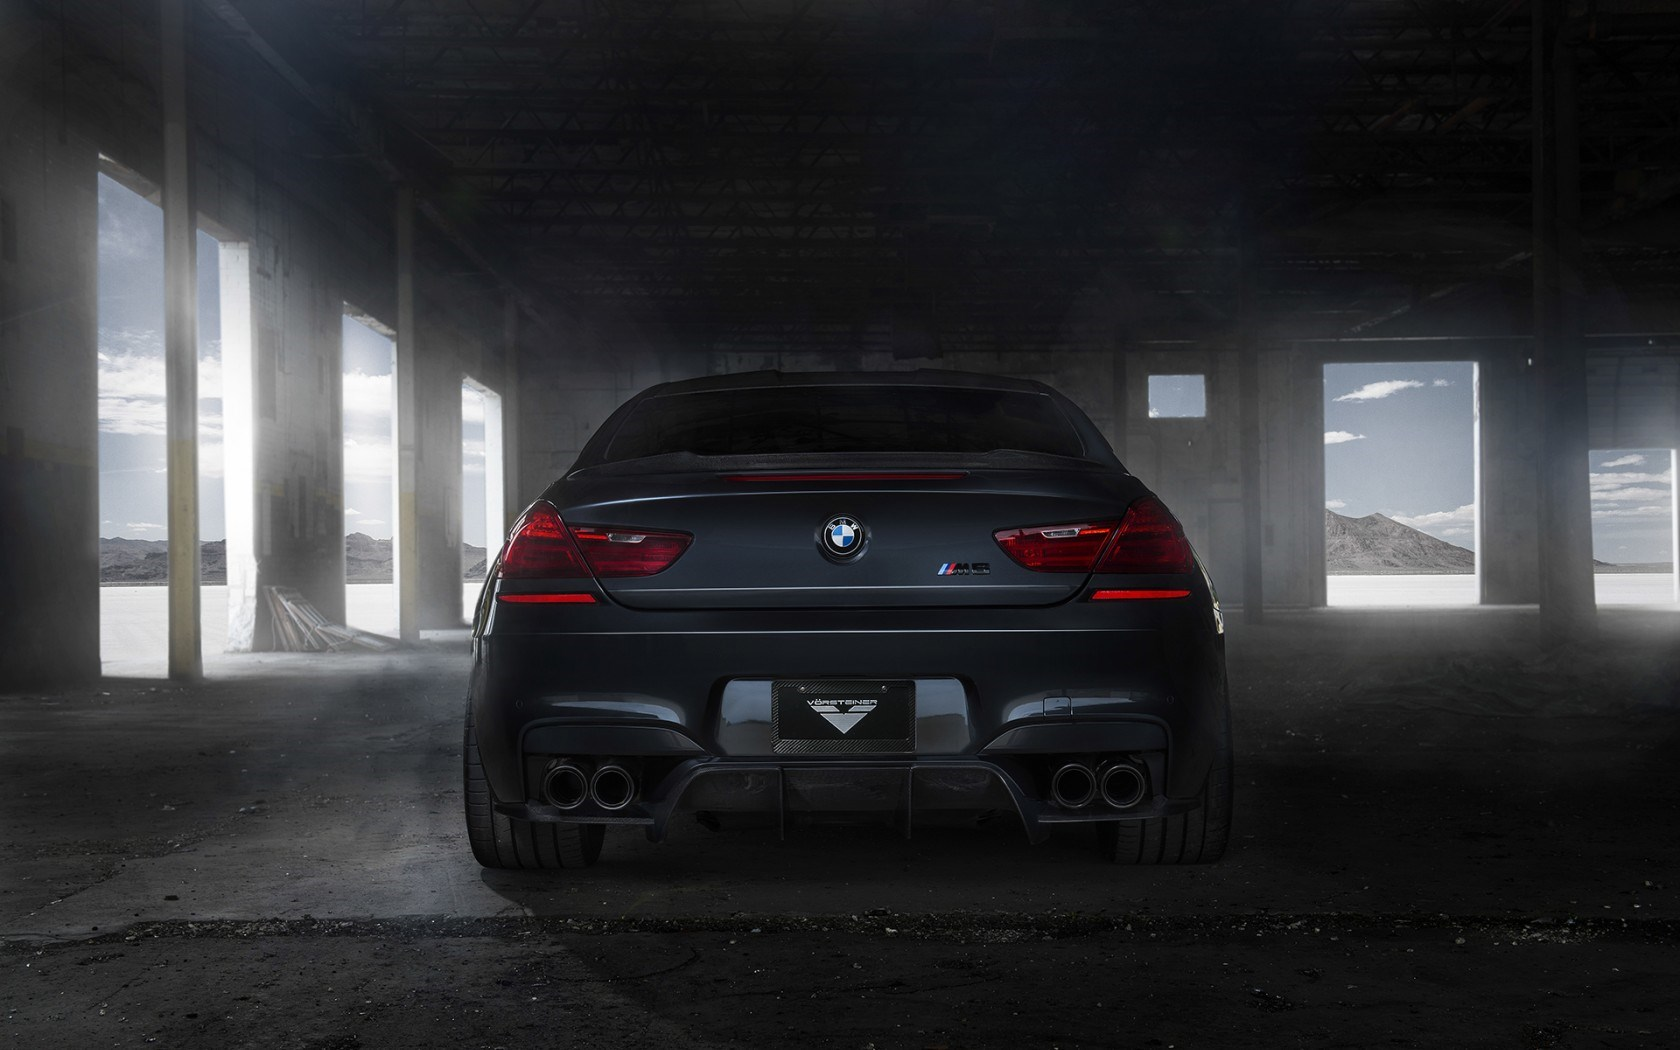 BMW M6 Coupe F13 Black Tuning Car Rear